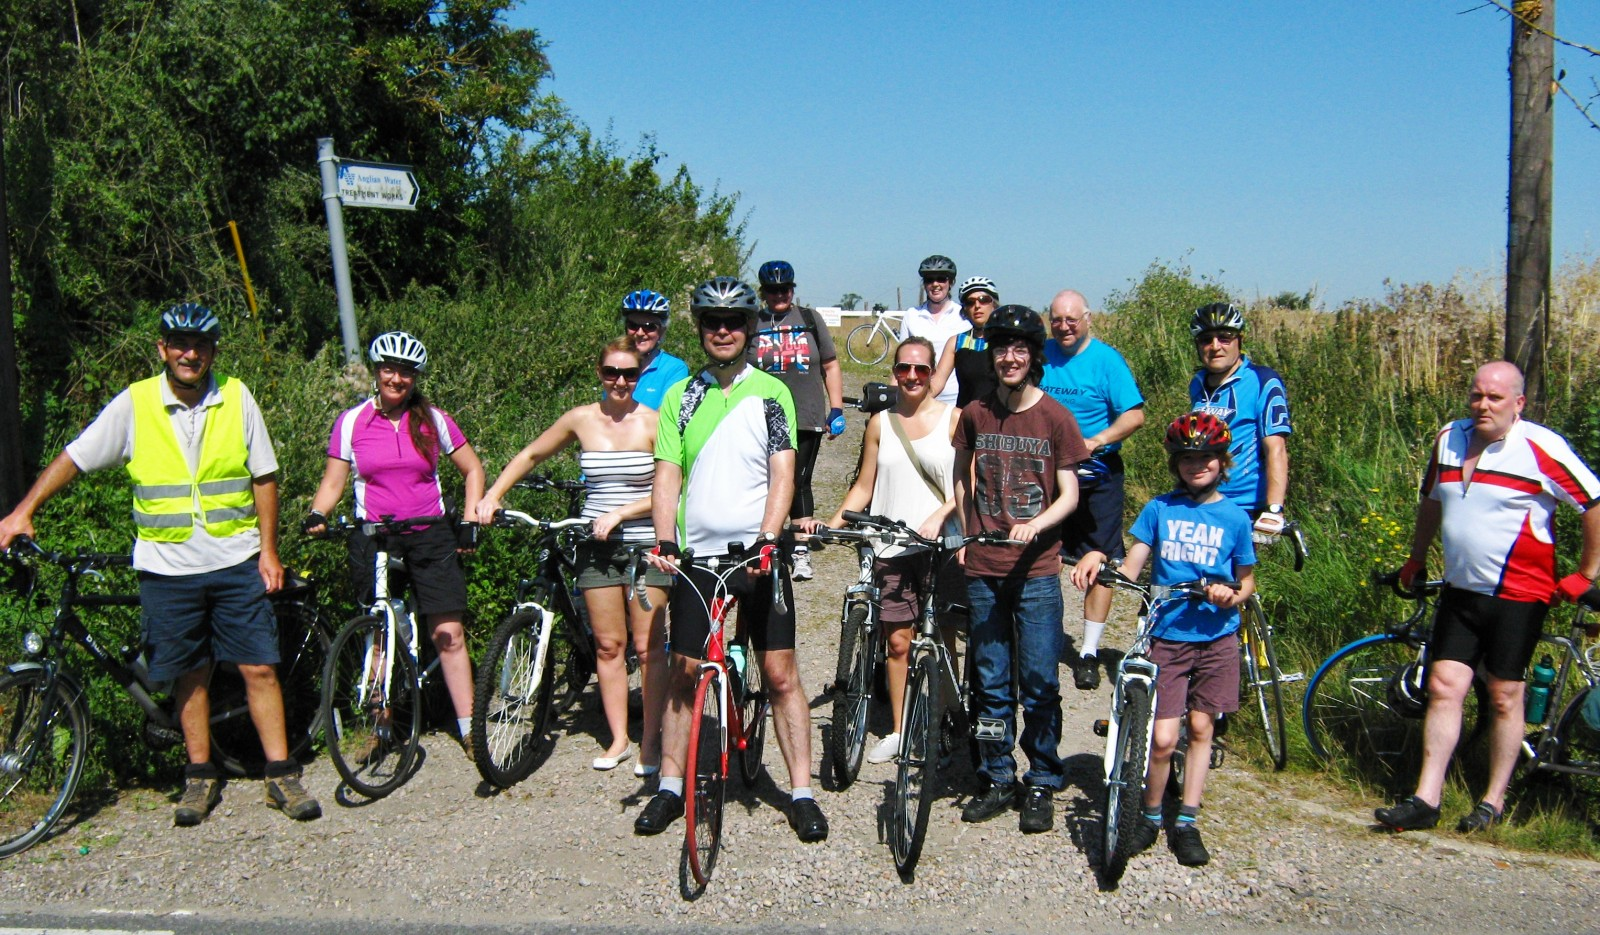 Recreation Ride Through Shoeburyness, Gt. Wakering & Barling 18th August 2012